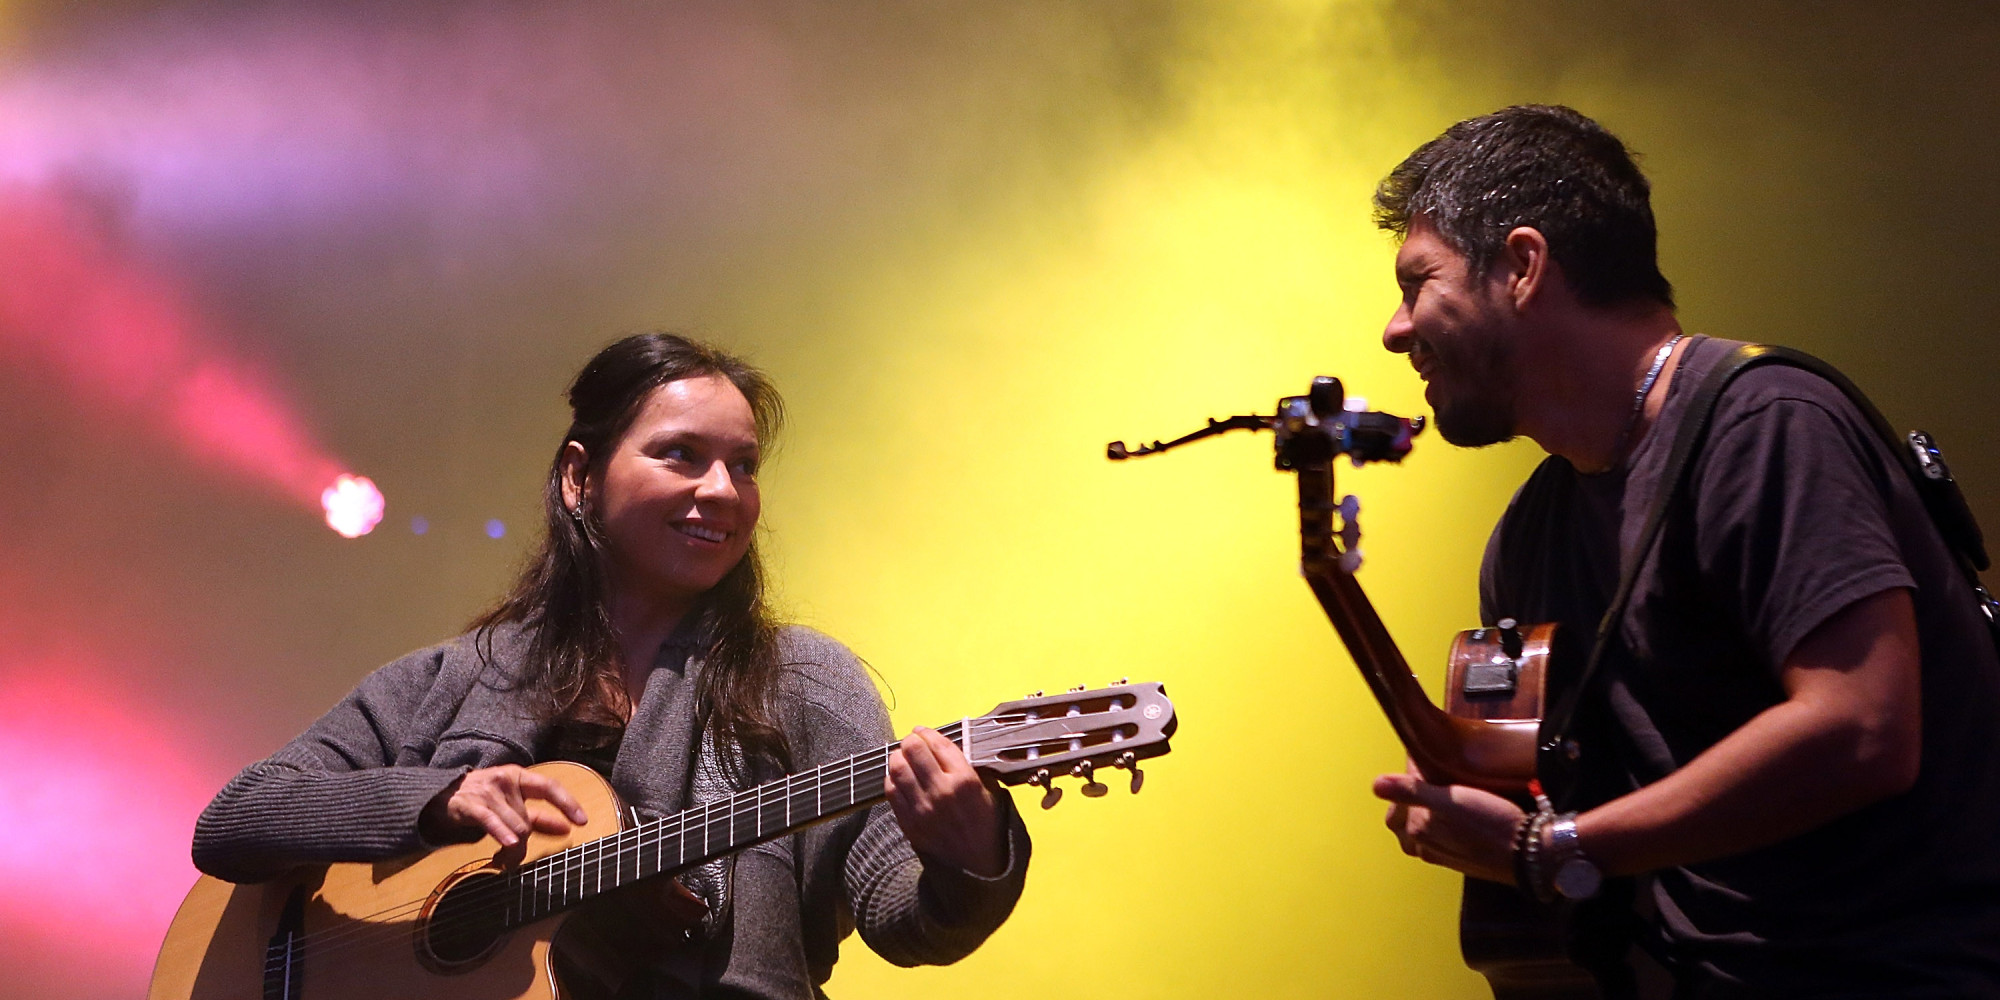 rodrigo y gabriela show they are grateful to the dead on new album huffpost. Black Bedroom Furniture Sets. Home Design Ideas